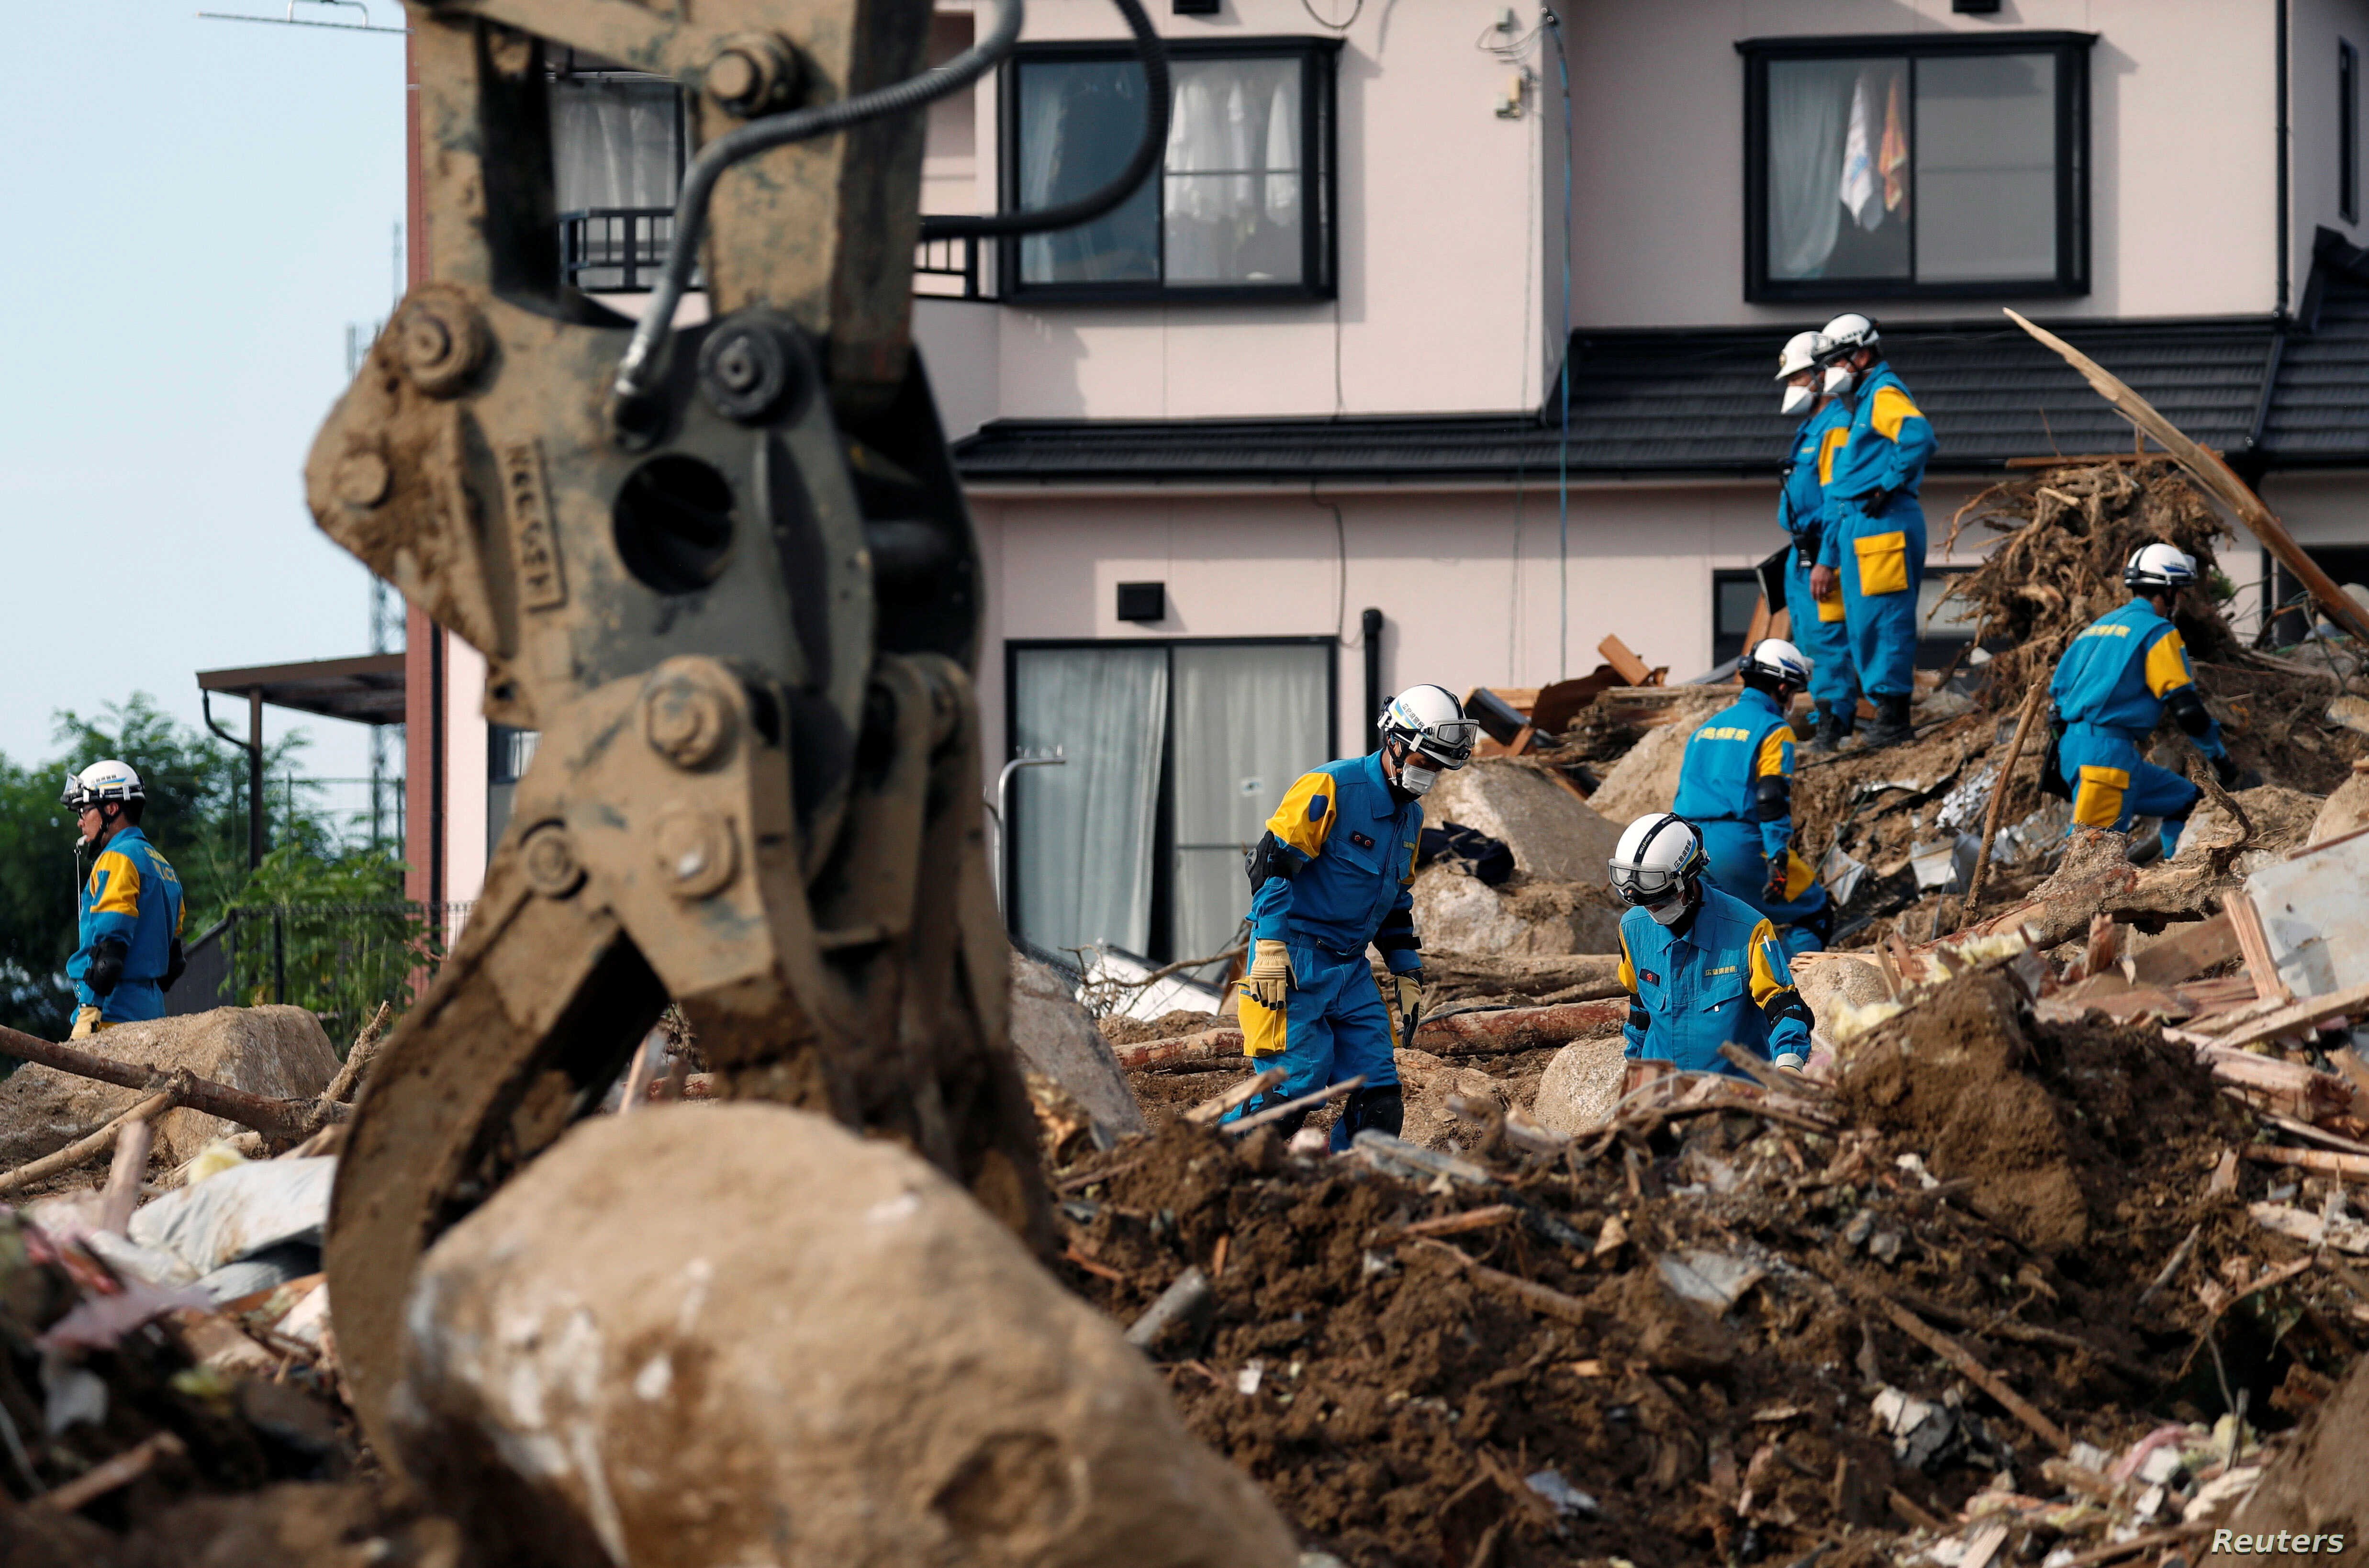 Rescue workers search for missing people at a landslide site caused by heavy rain in Kumano Town, Hiroshima Prefecture, Japan, July 11, 2018.